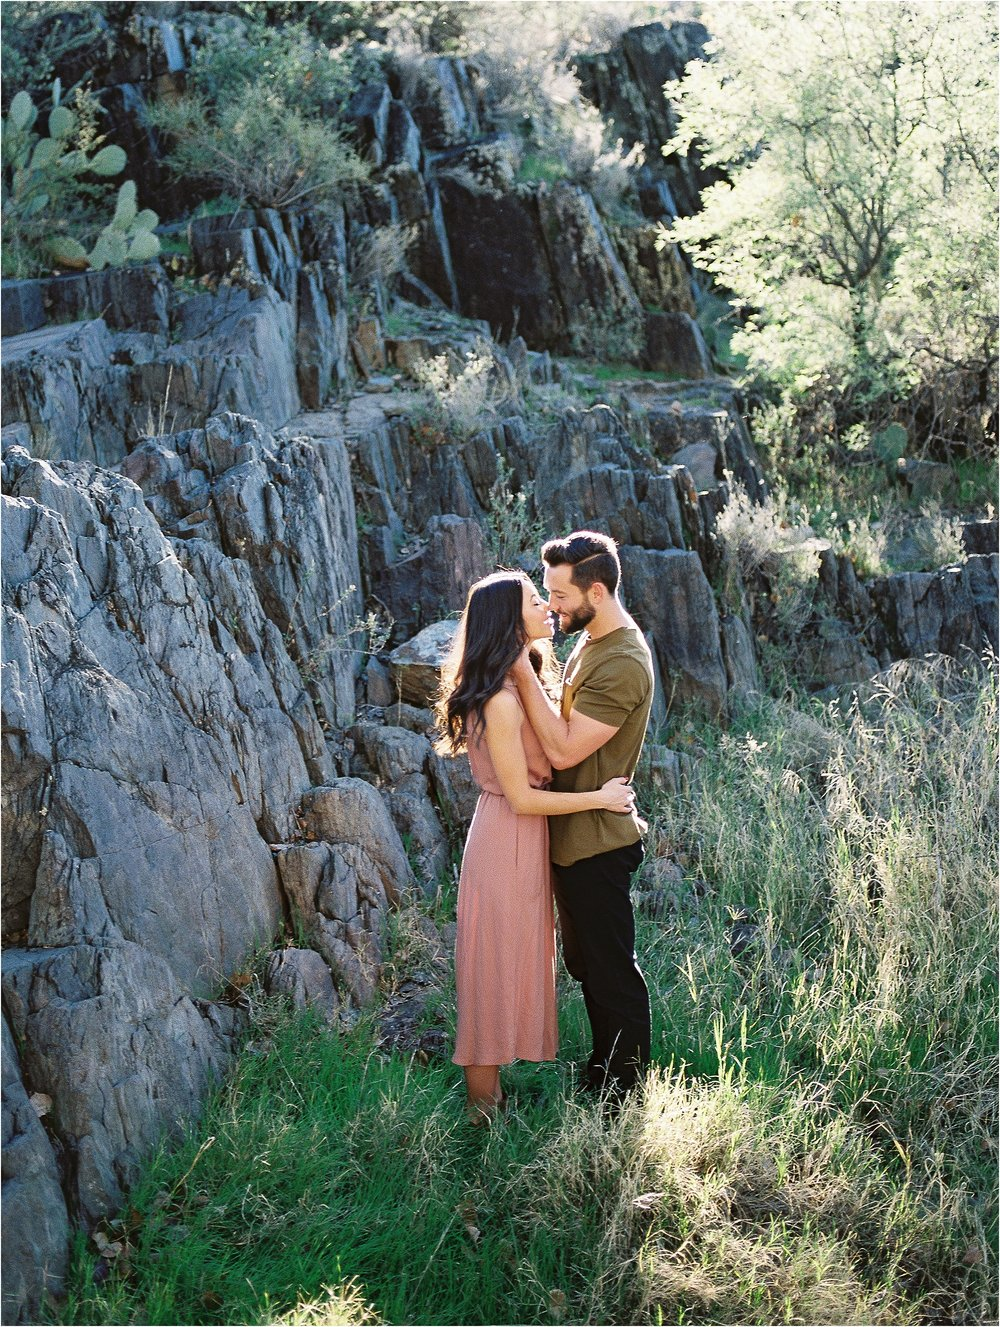 Sarah Jane Photography Film Hybrid Scottsdale Phoenix Arizona Destination Wedding Photographer Sakura Colin Bloguettes cave creek desert_0006.jpg